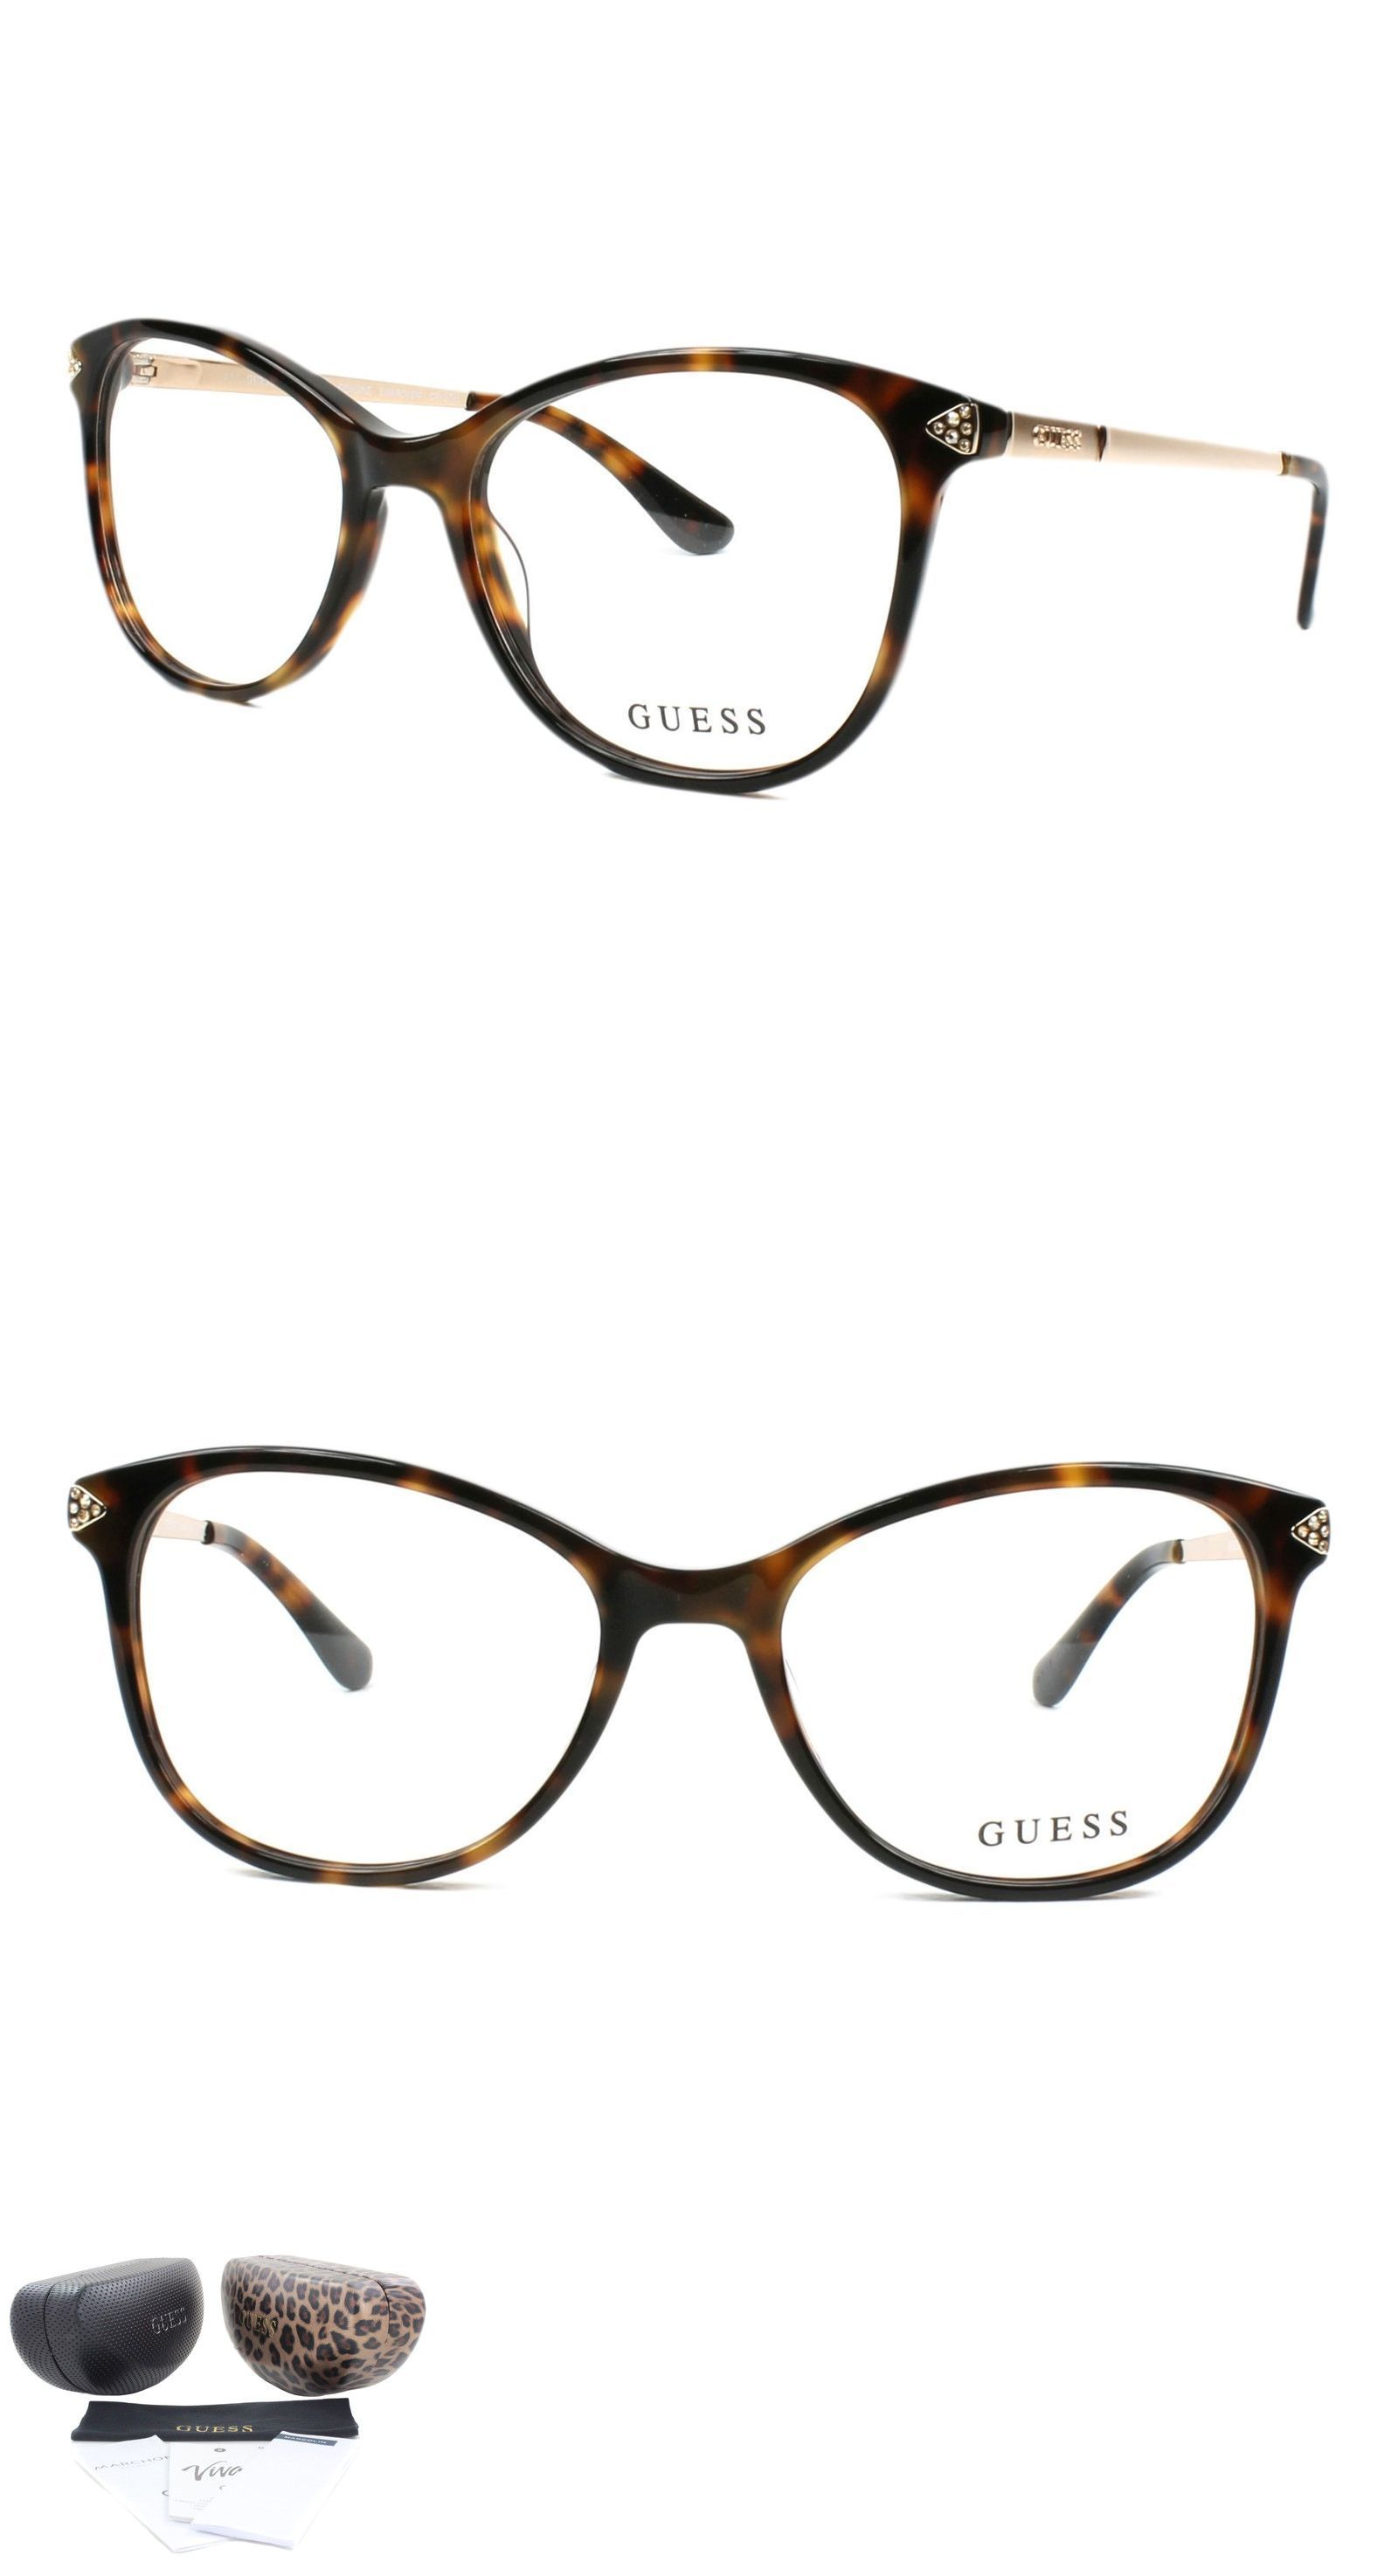 Fashion Eyewear Clear Glasses 179248: Guess Eyeglasses Gu2632-S 052 ...